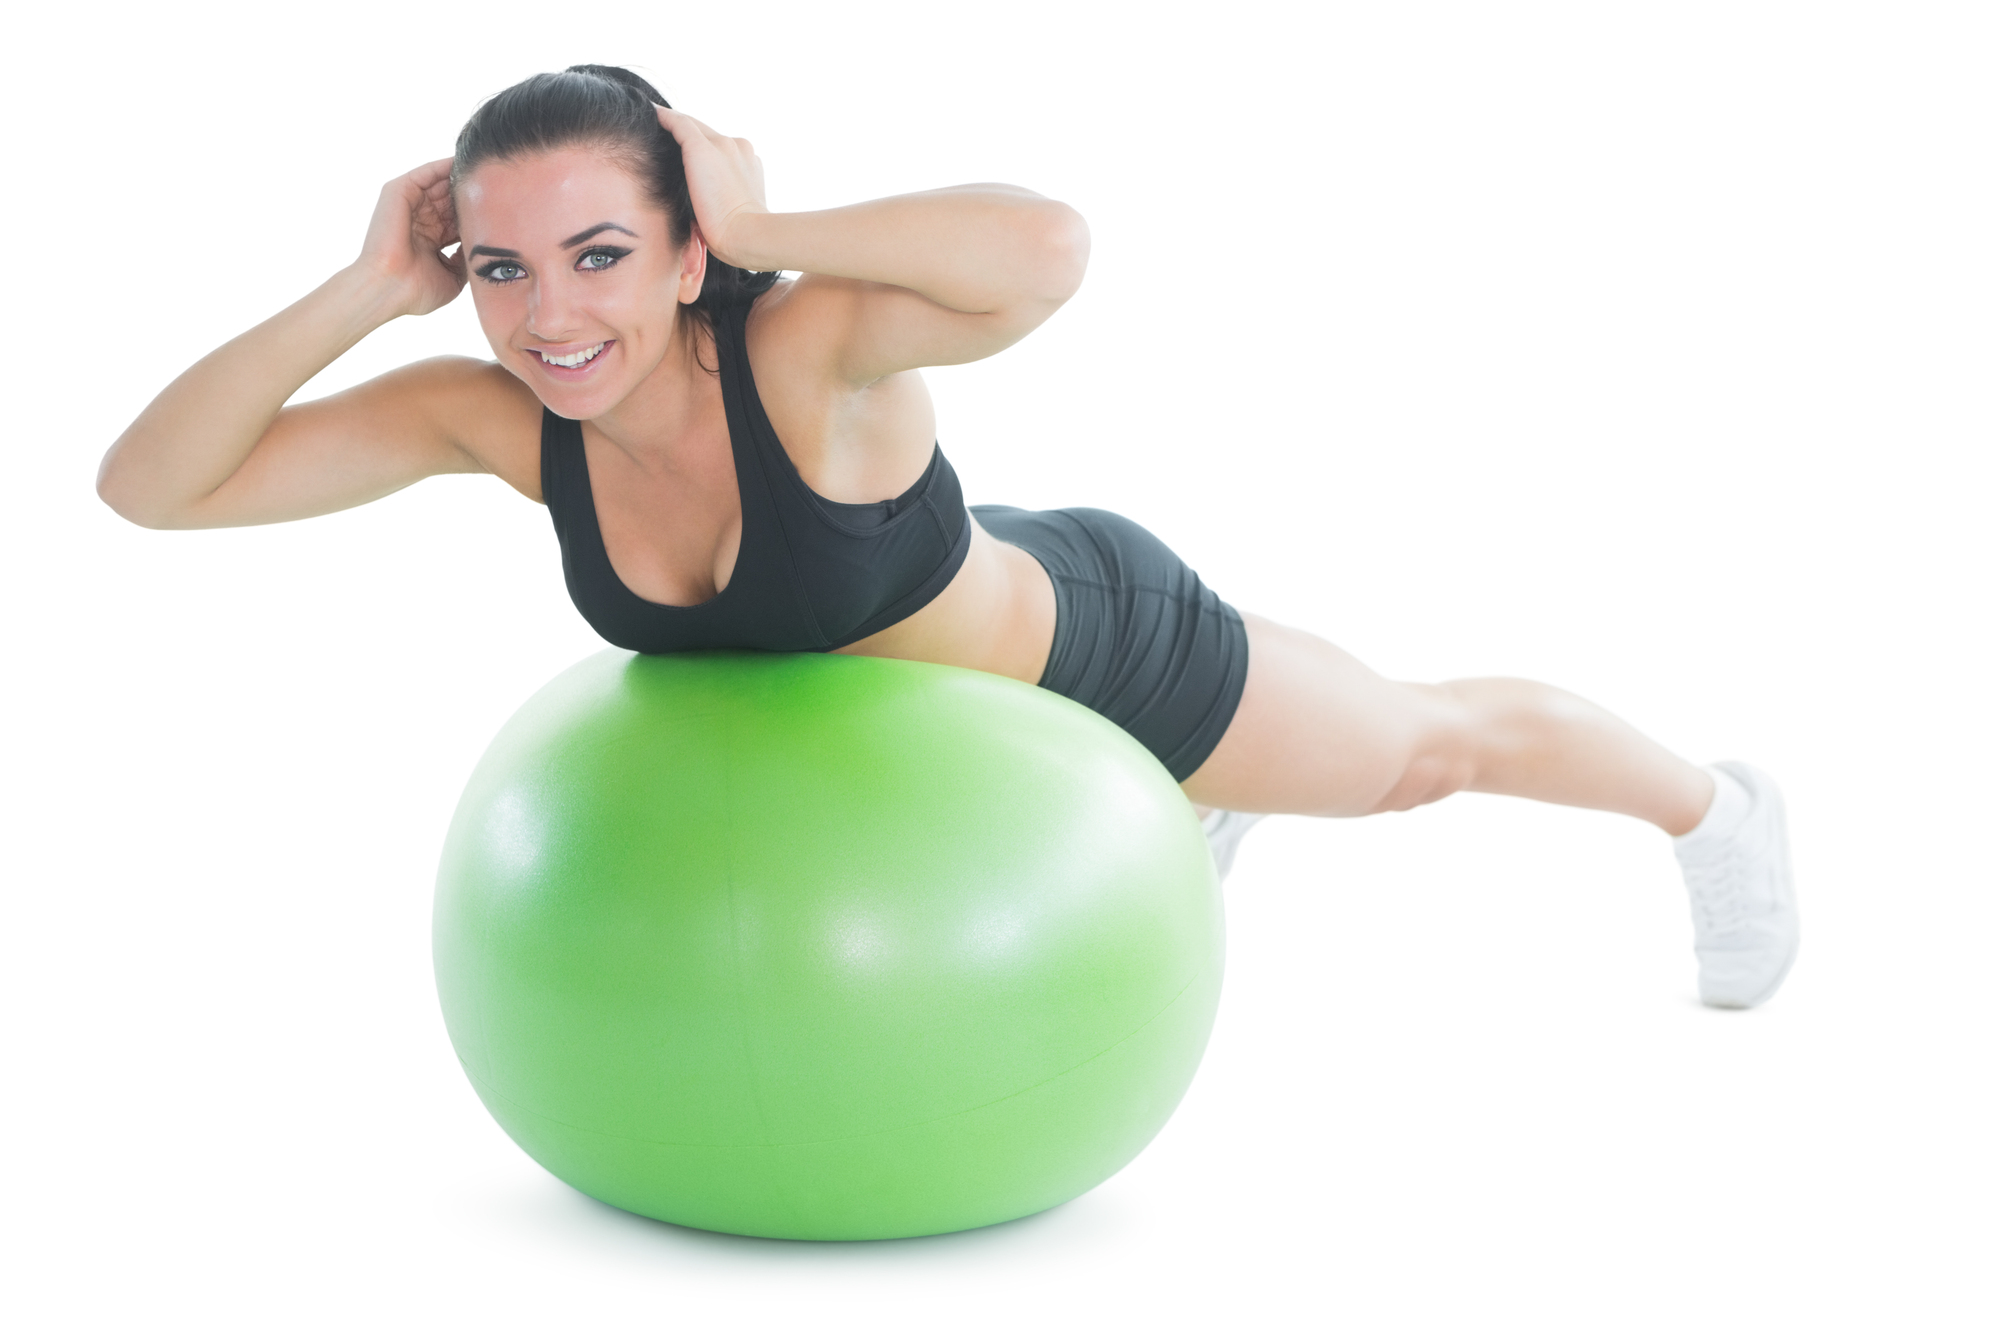 Happy fit woman doing an exercise on a green fitness ball smiling at camera